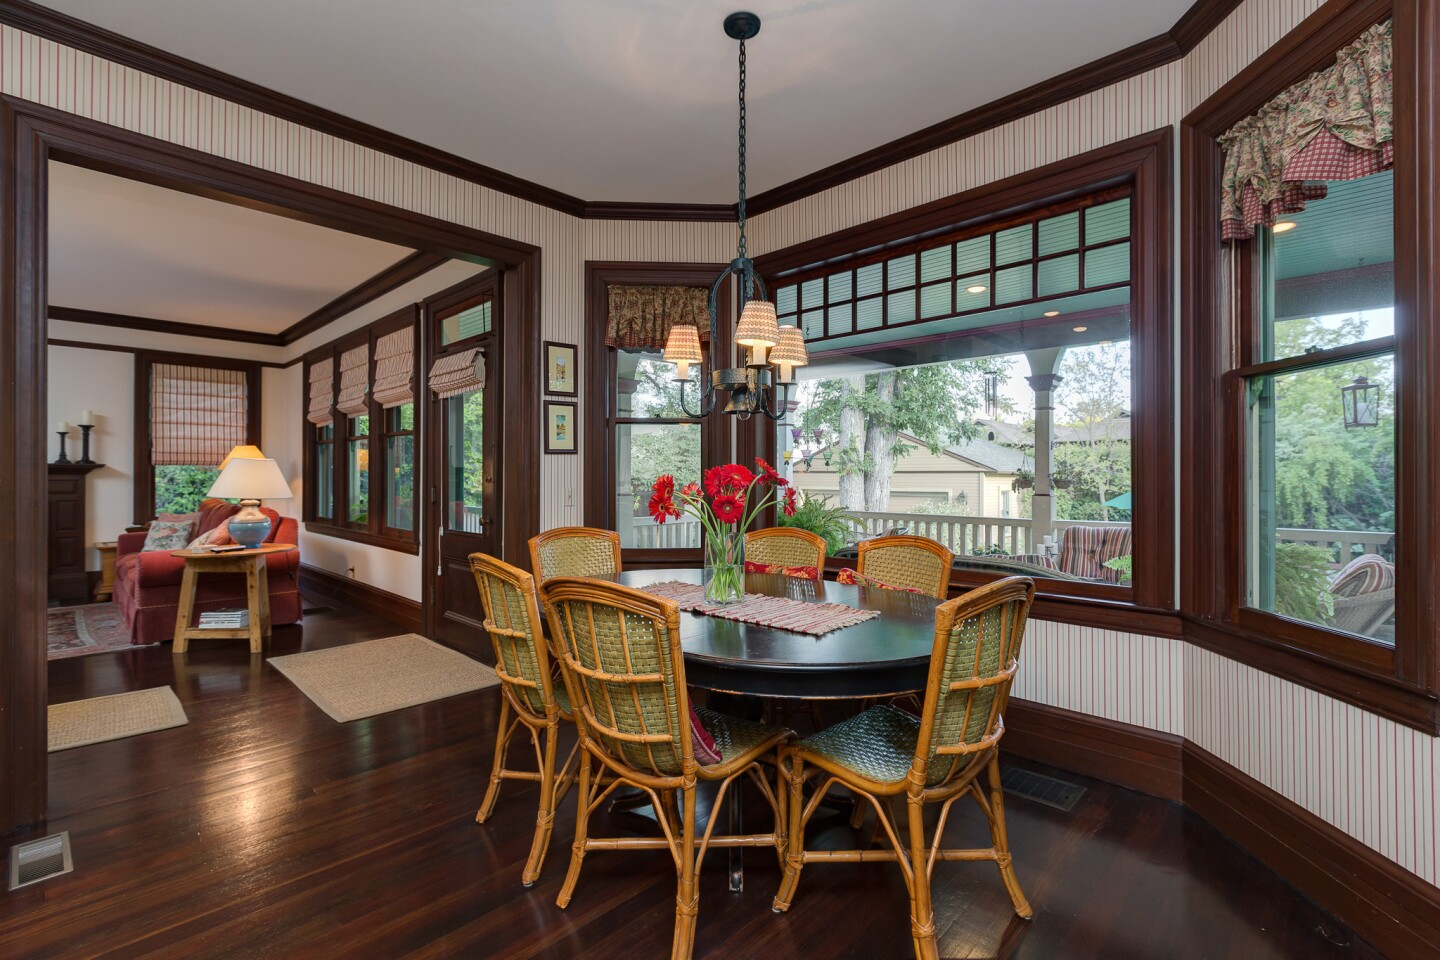 Home of the Day: The house that Grape-Nuts built